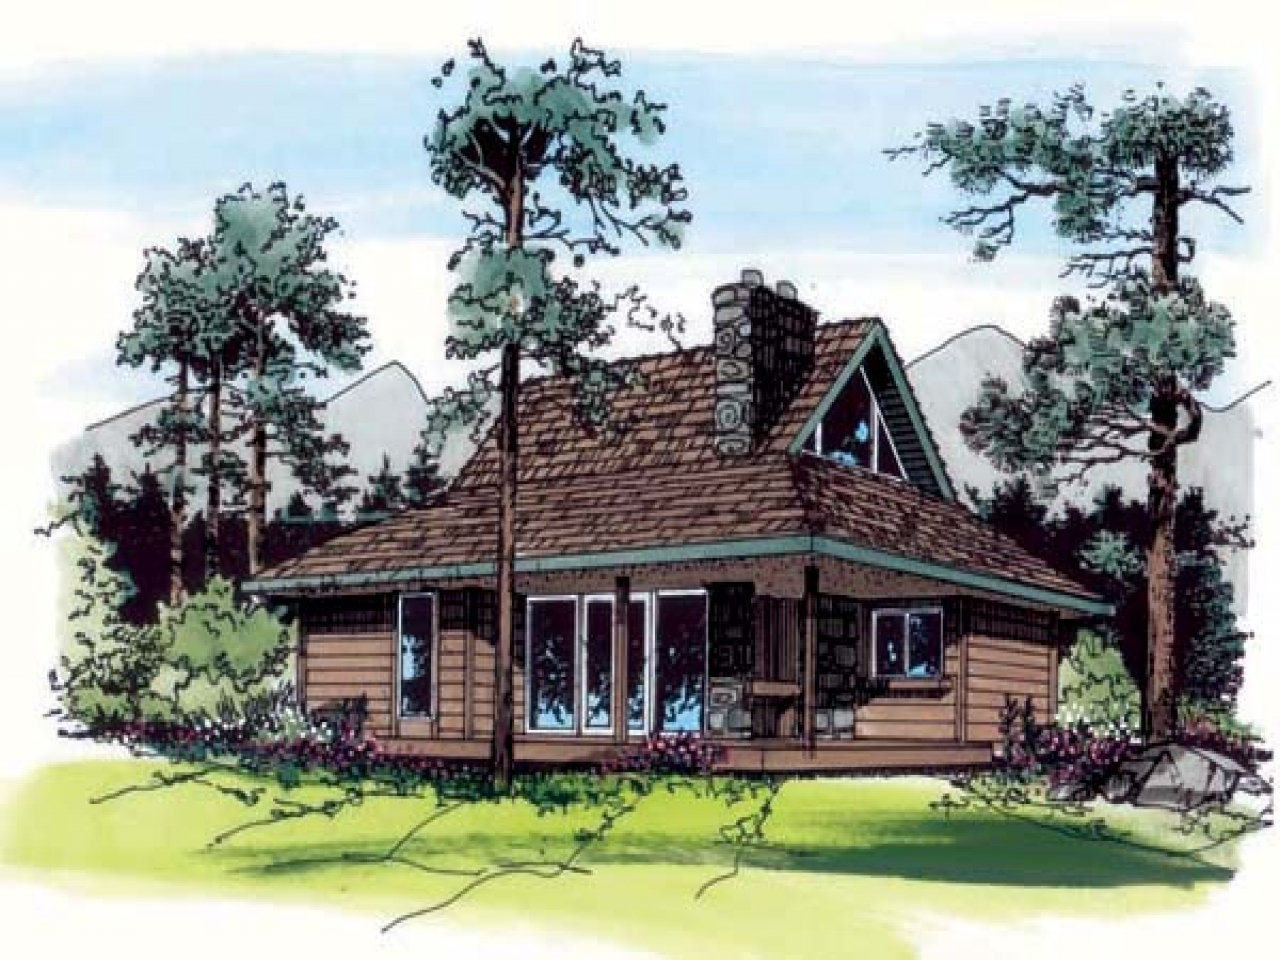 Rustic cabin house plans simple rustic cabin plans small for Simple rustic house plans